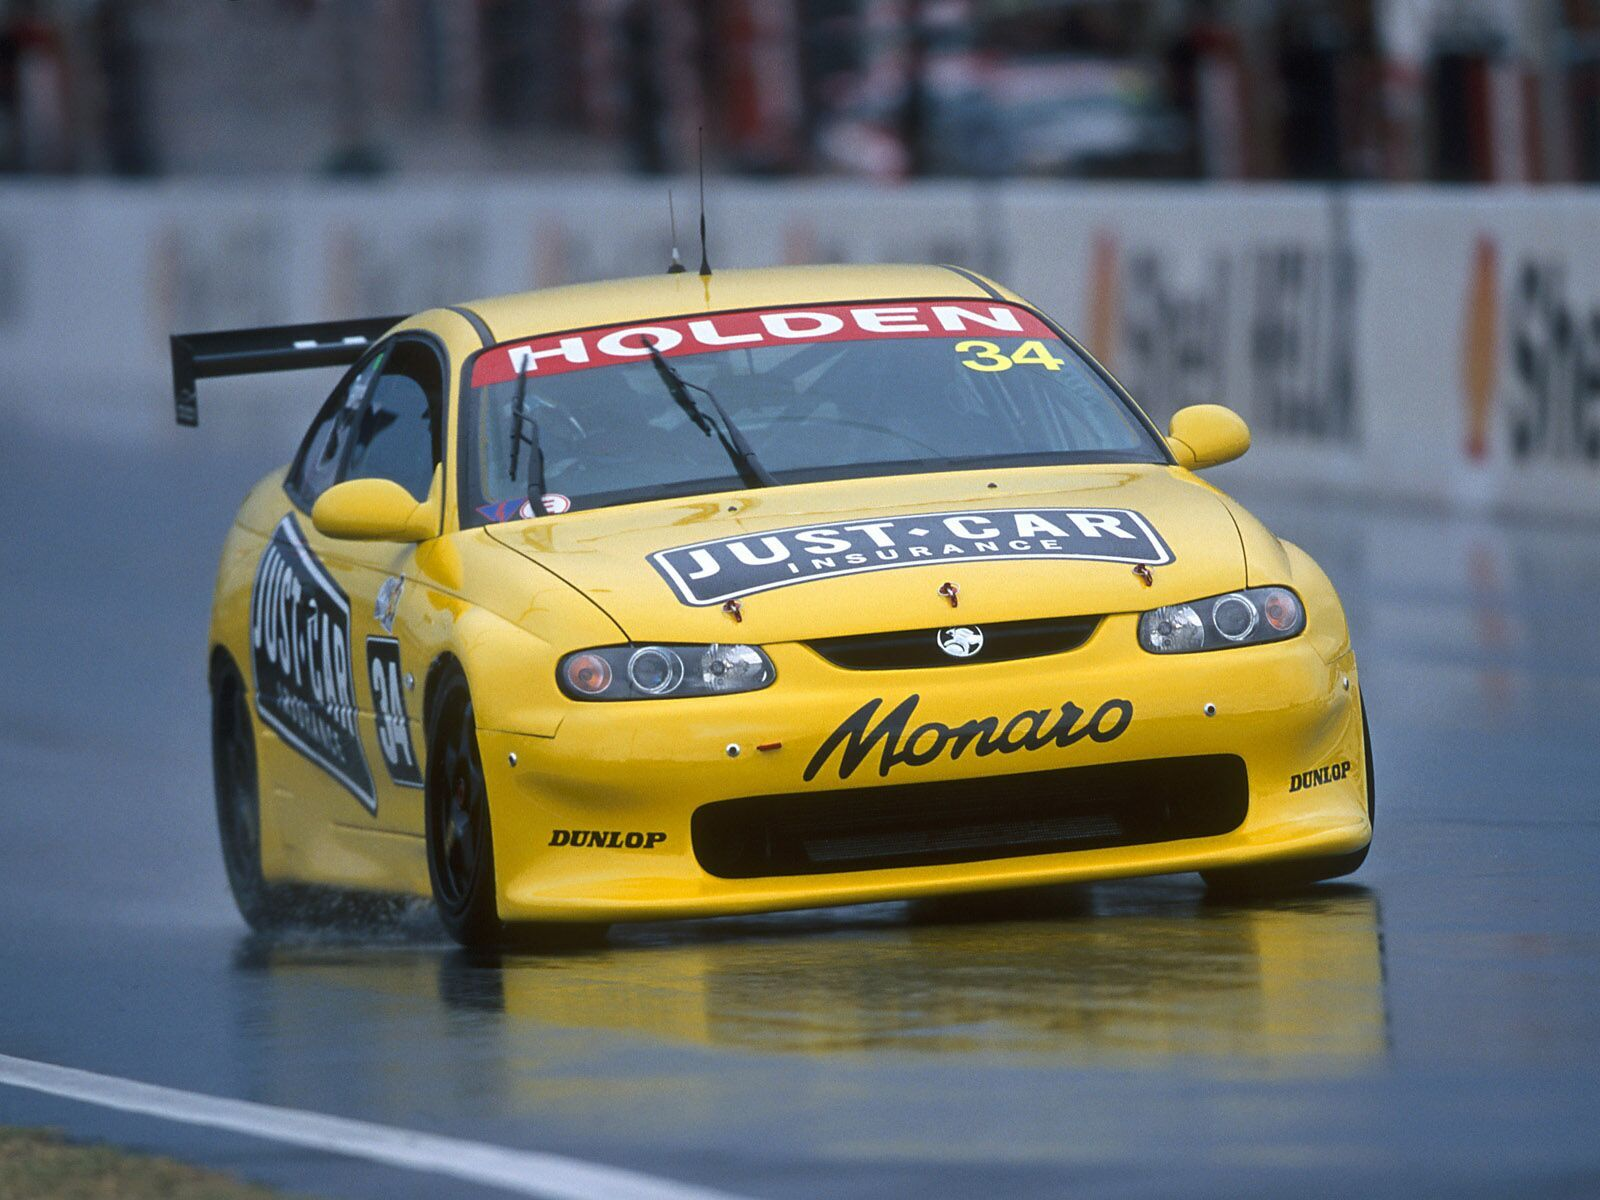 The Monaro didn't make a great impact on the ntrack, but